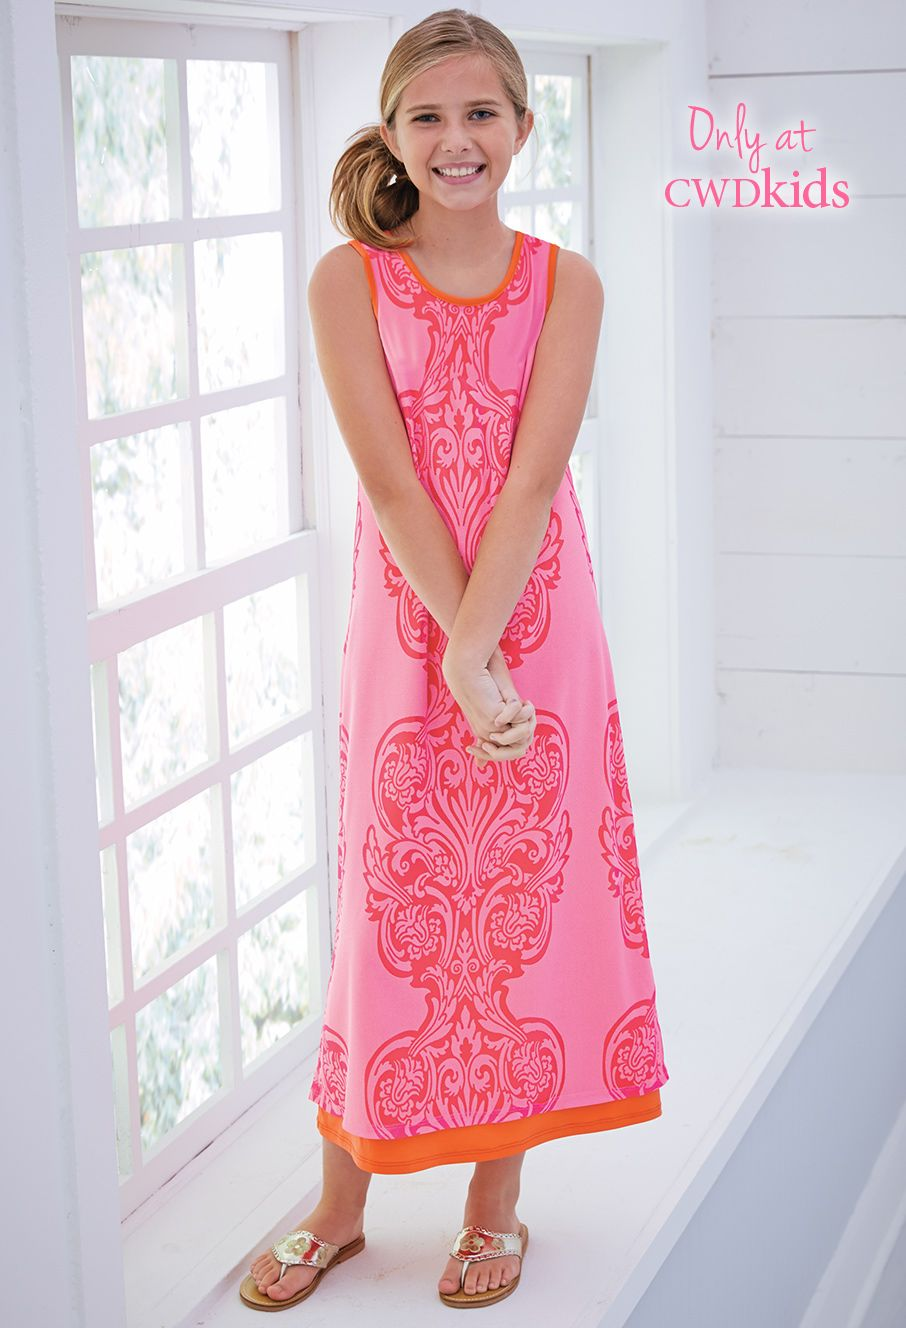 Only at CWDkids: Pink Paisley Maxi Dress | Retro CWDkids | Pinterest ...